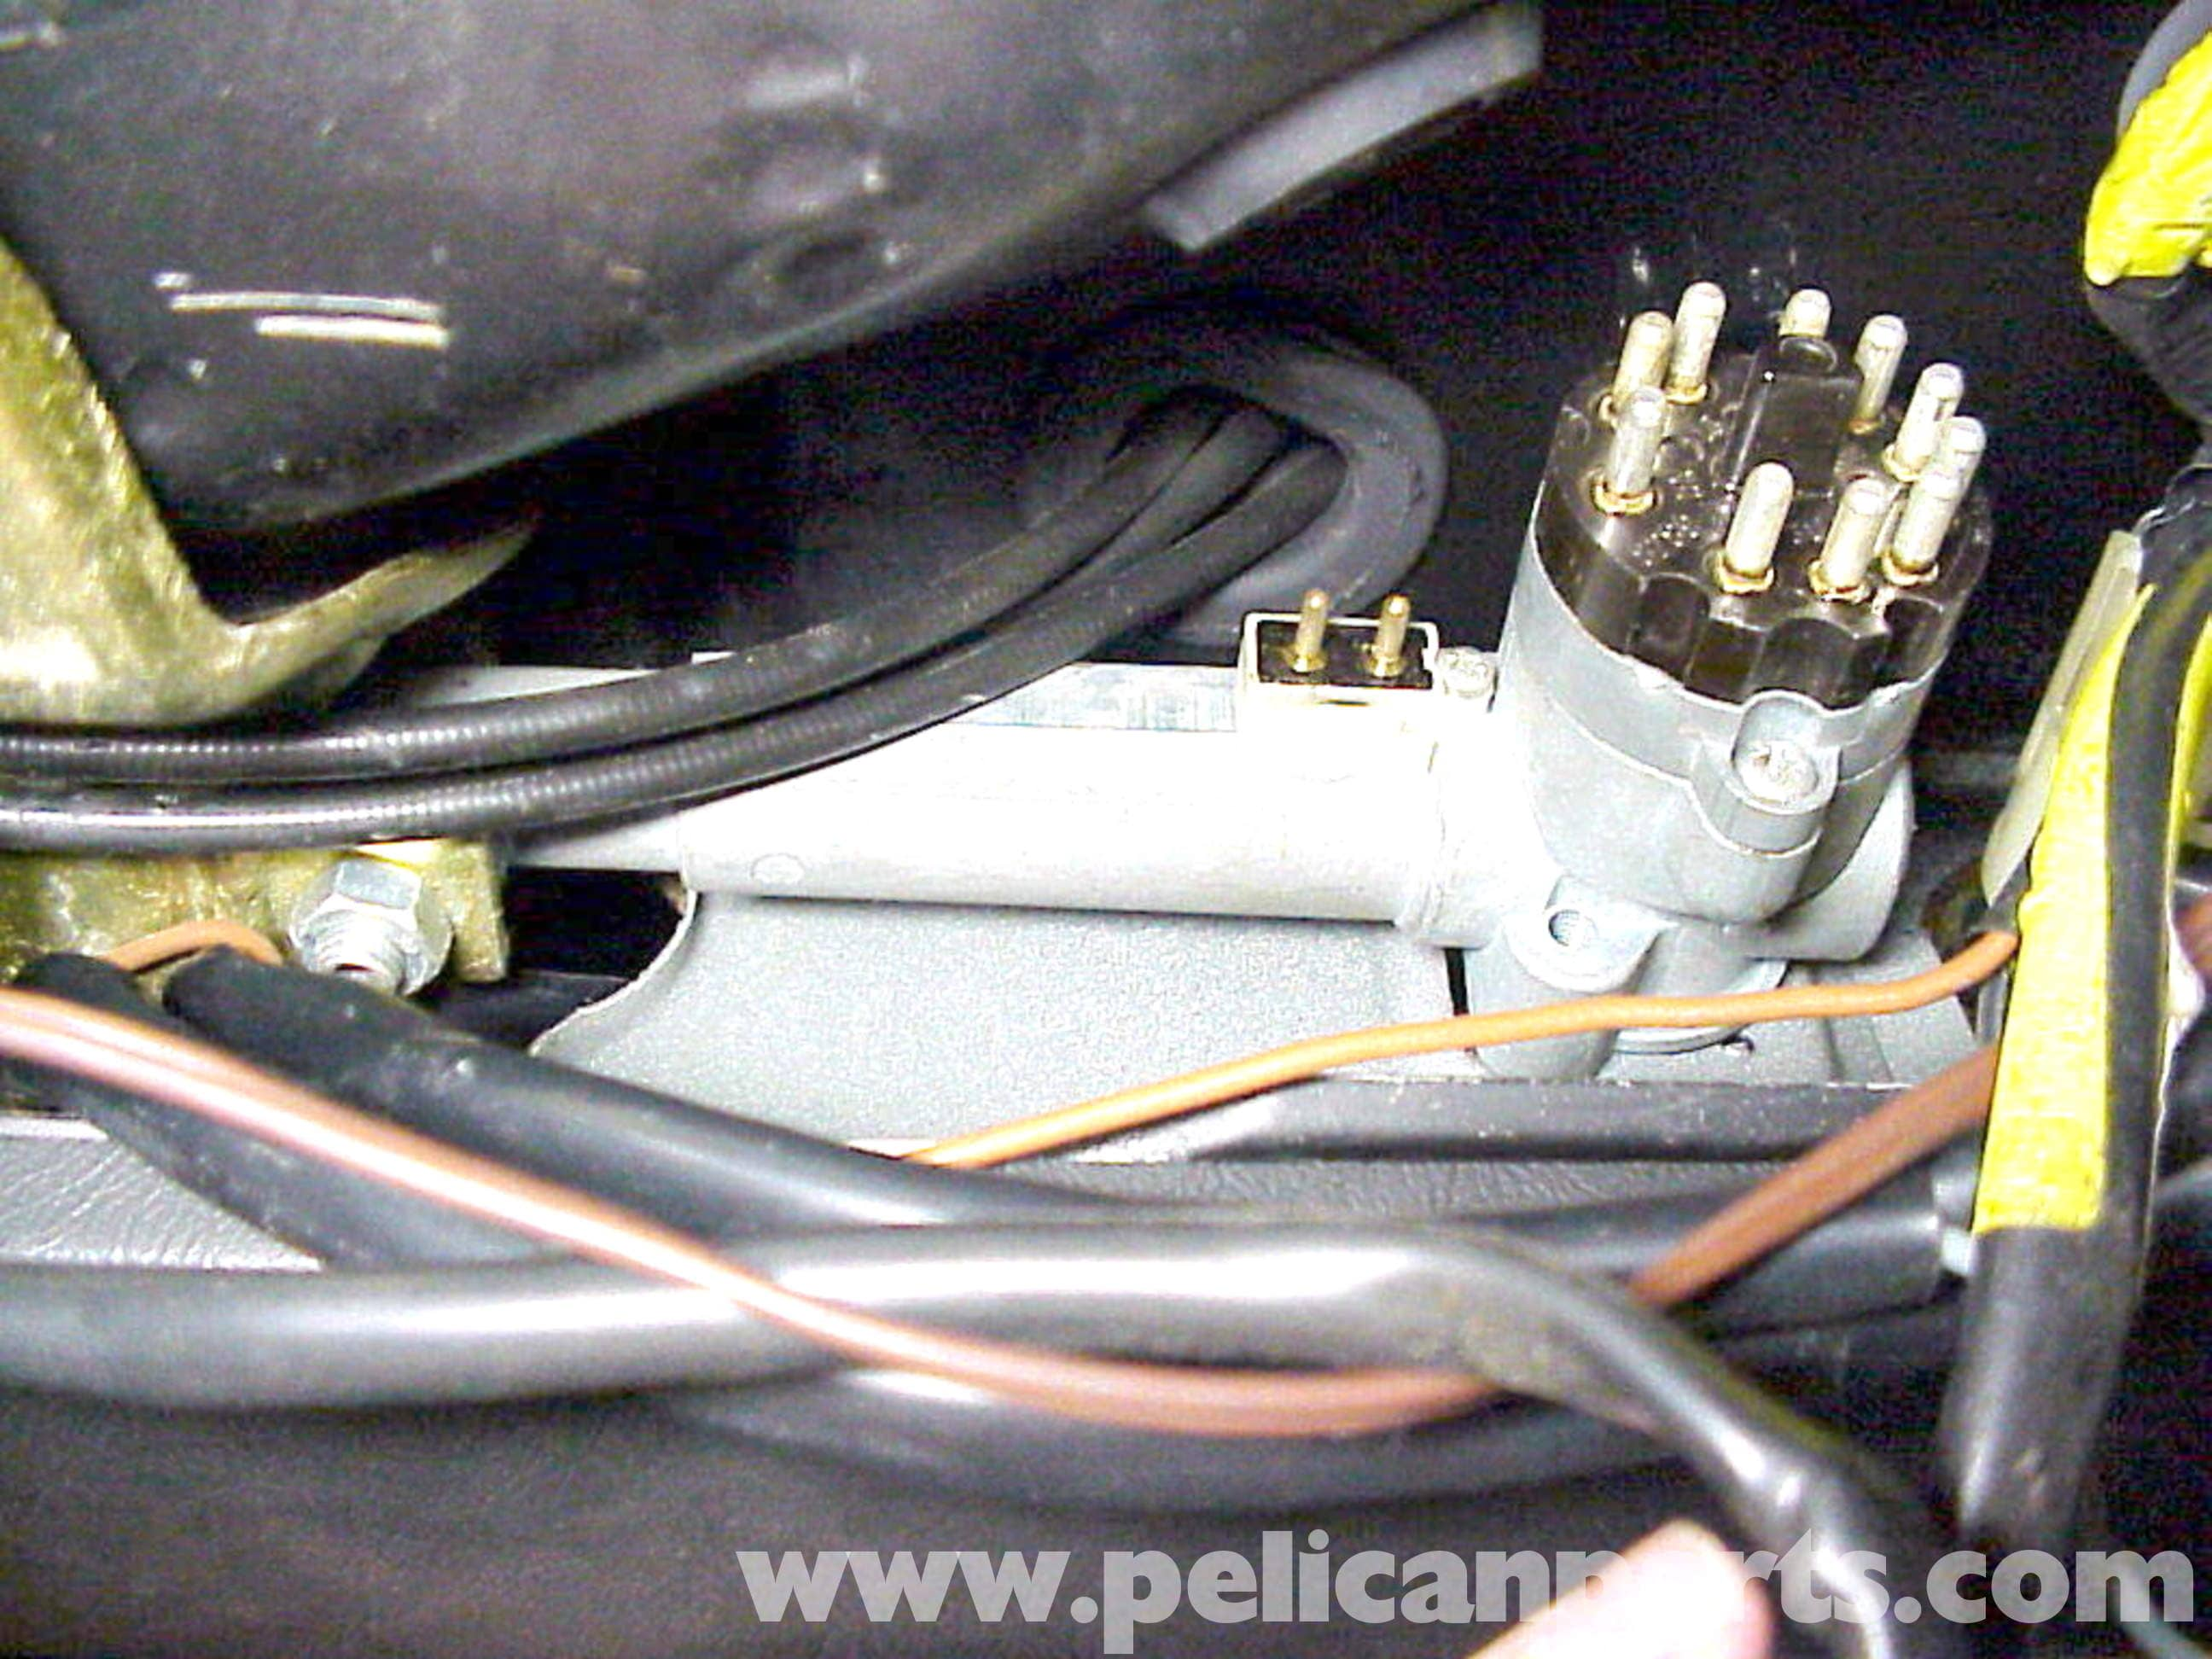 Pic2 porsche 911 ignition switch replacement 911 (1965 89) 930 1984 porsche 911 wiring diagram at gsmx.co